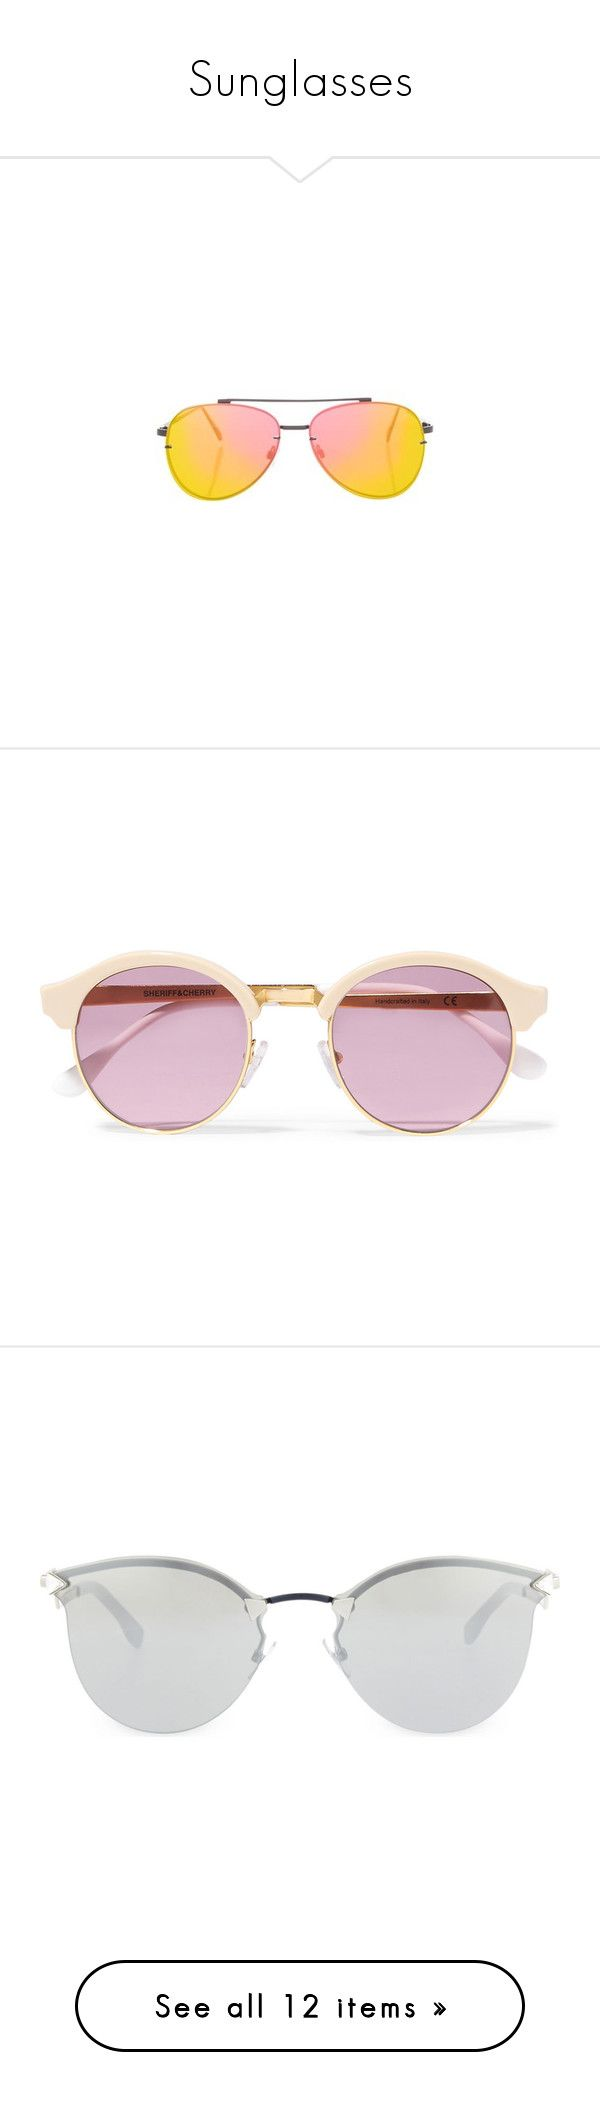 """Sunglasses"" by haleybean47 ❤ liked on Polyvore featuring accessories, eyewear, sunglasses, pink, metal sunglasses, flat lens sunglasses, metal glasses, topshop sunglasses, pink sunglasses and glasses"